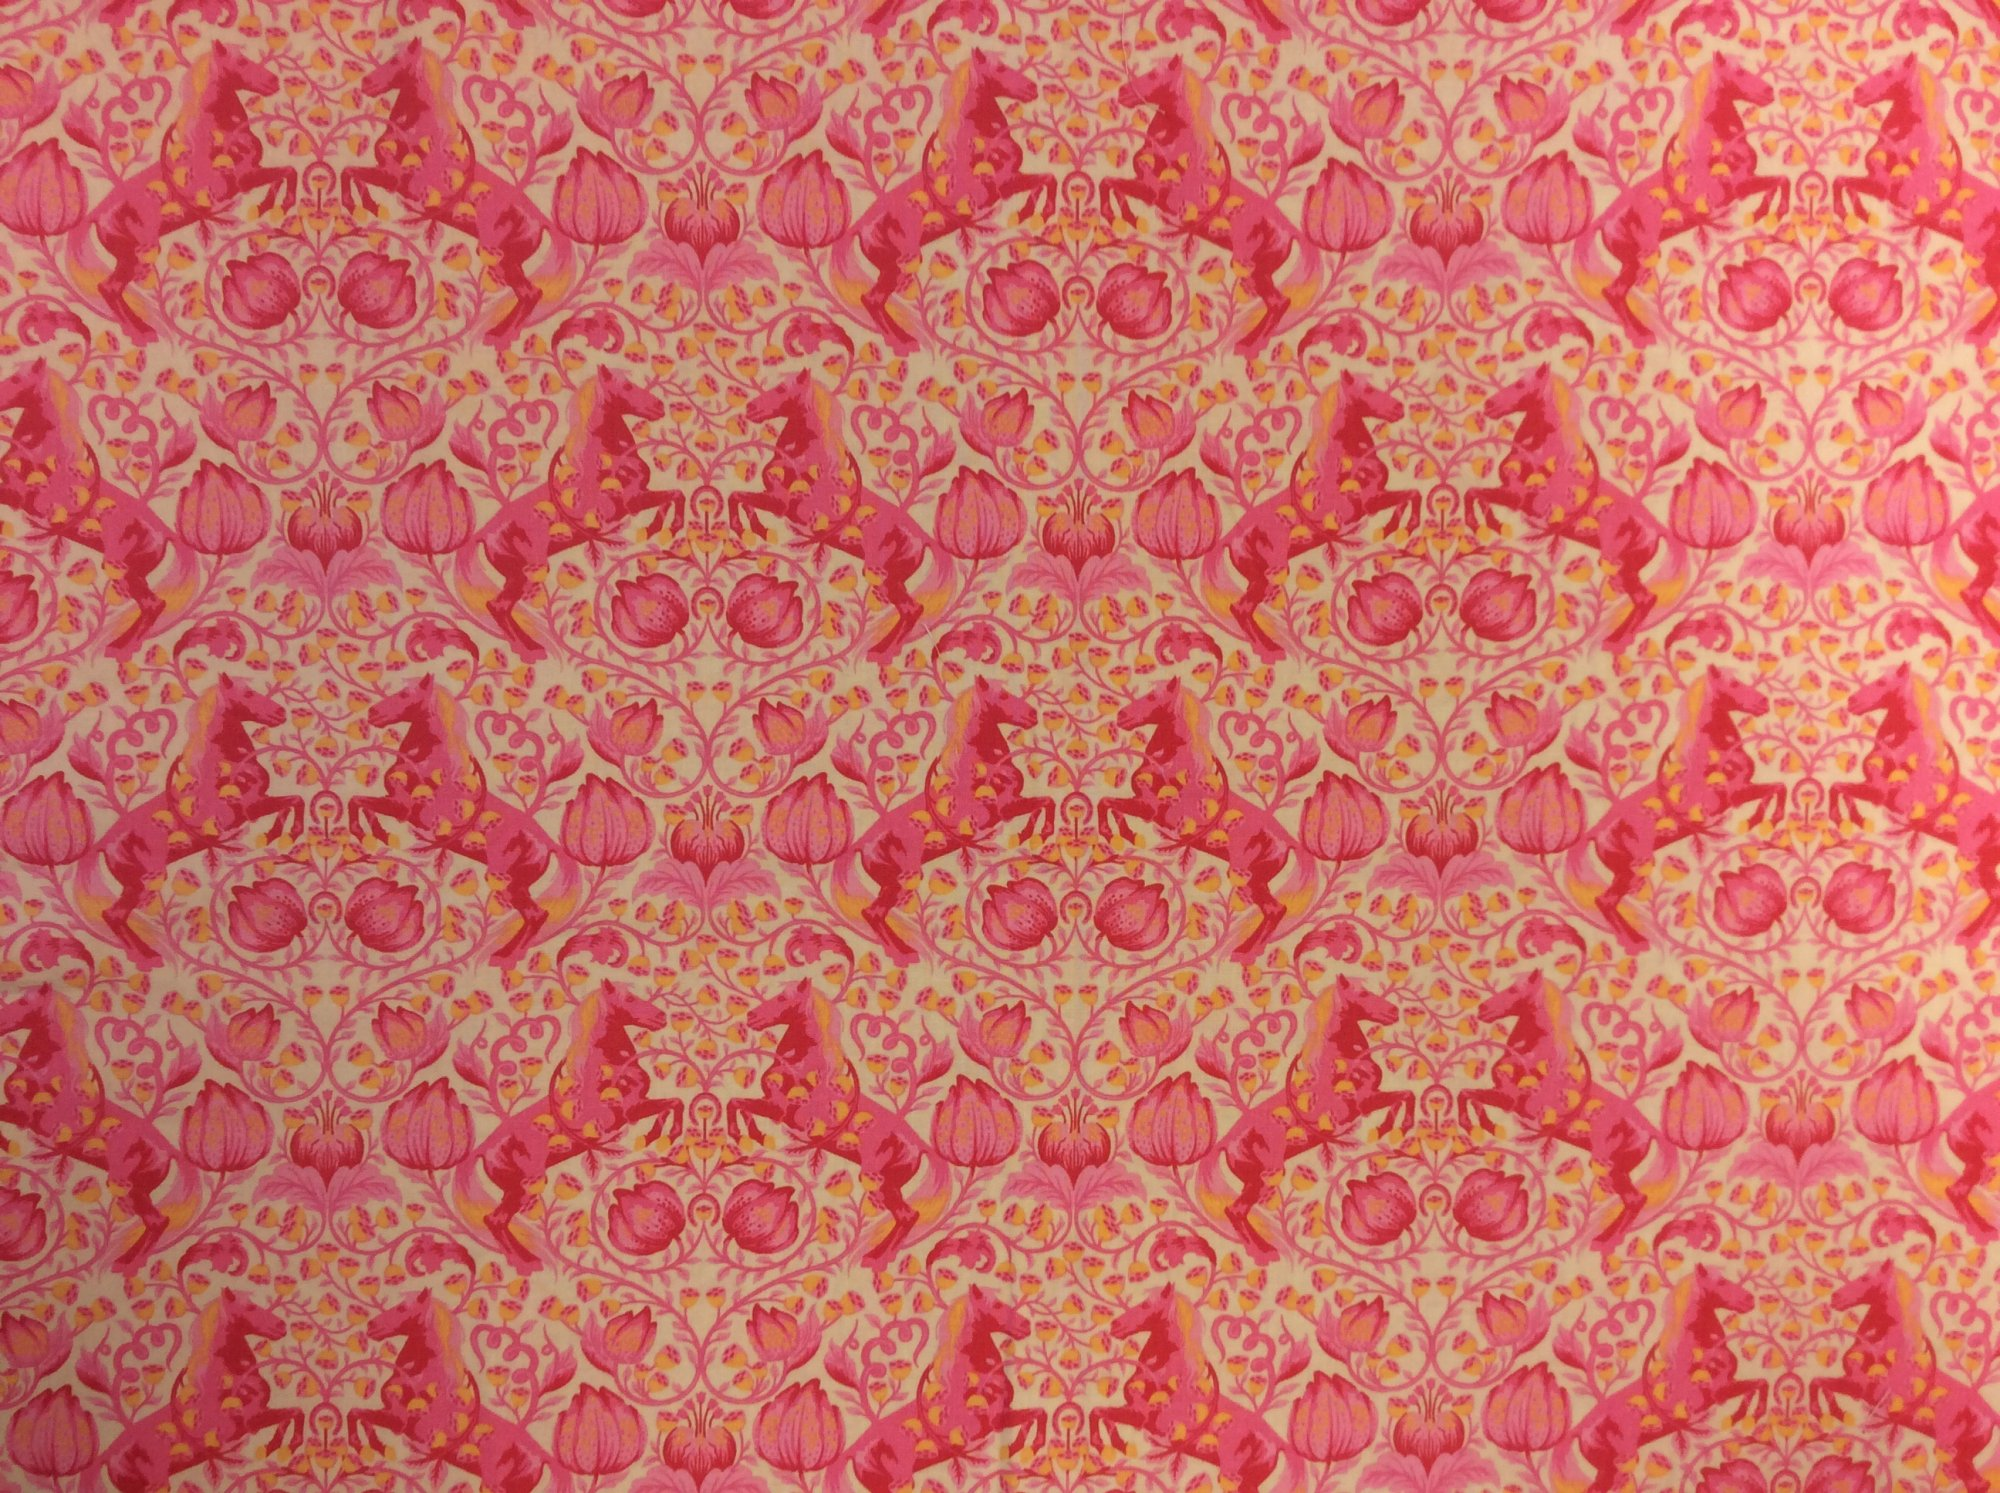 FAT QUARTER! RARE OUT OF PRINT Tula Pink Fox Field Pony Play Cotton Quilt Fabric RPFTP1